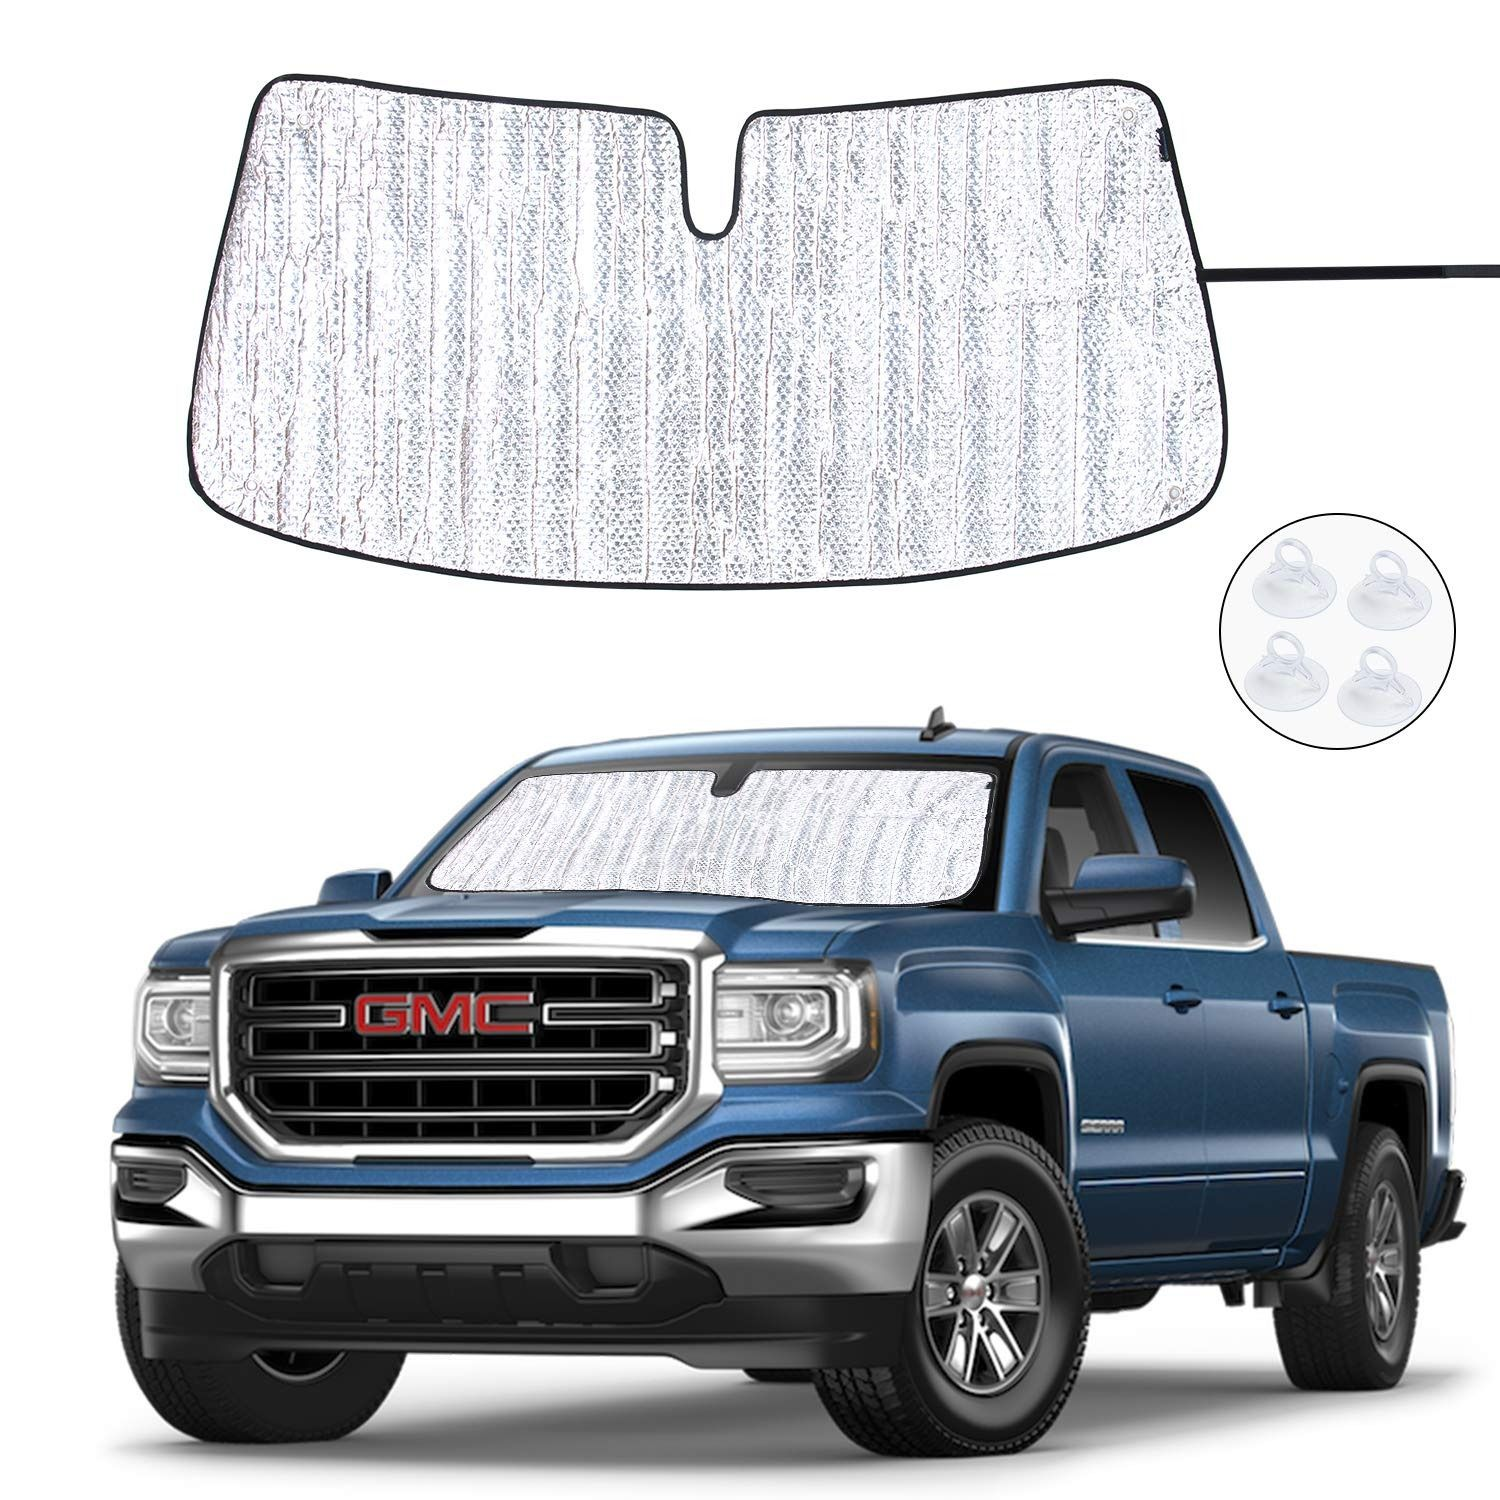 Front Windshield Sunshade With Uv Ray Reflector This Sunshade Fit